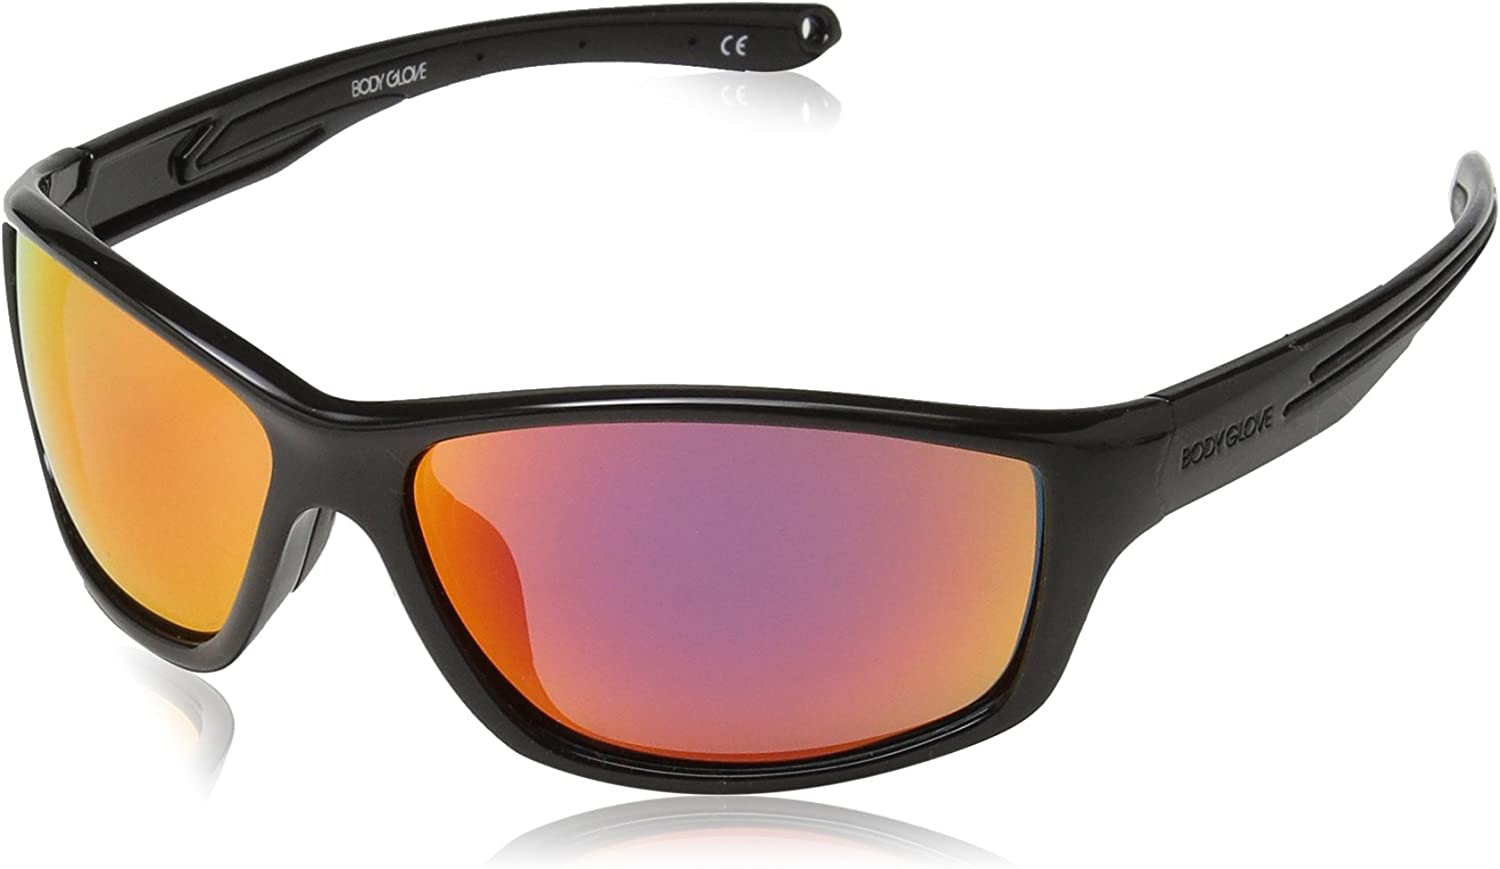 Challenge the lowest price of Japan Body Glove Men's FL25 Sunglasses Black Wrap Polarized Shiny Red Max 62% OFF